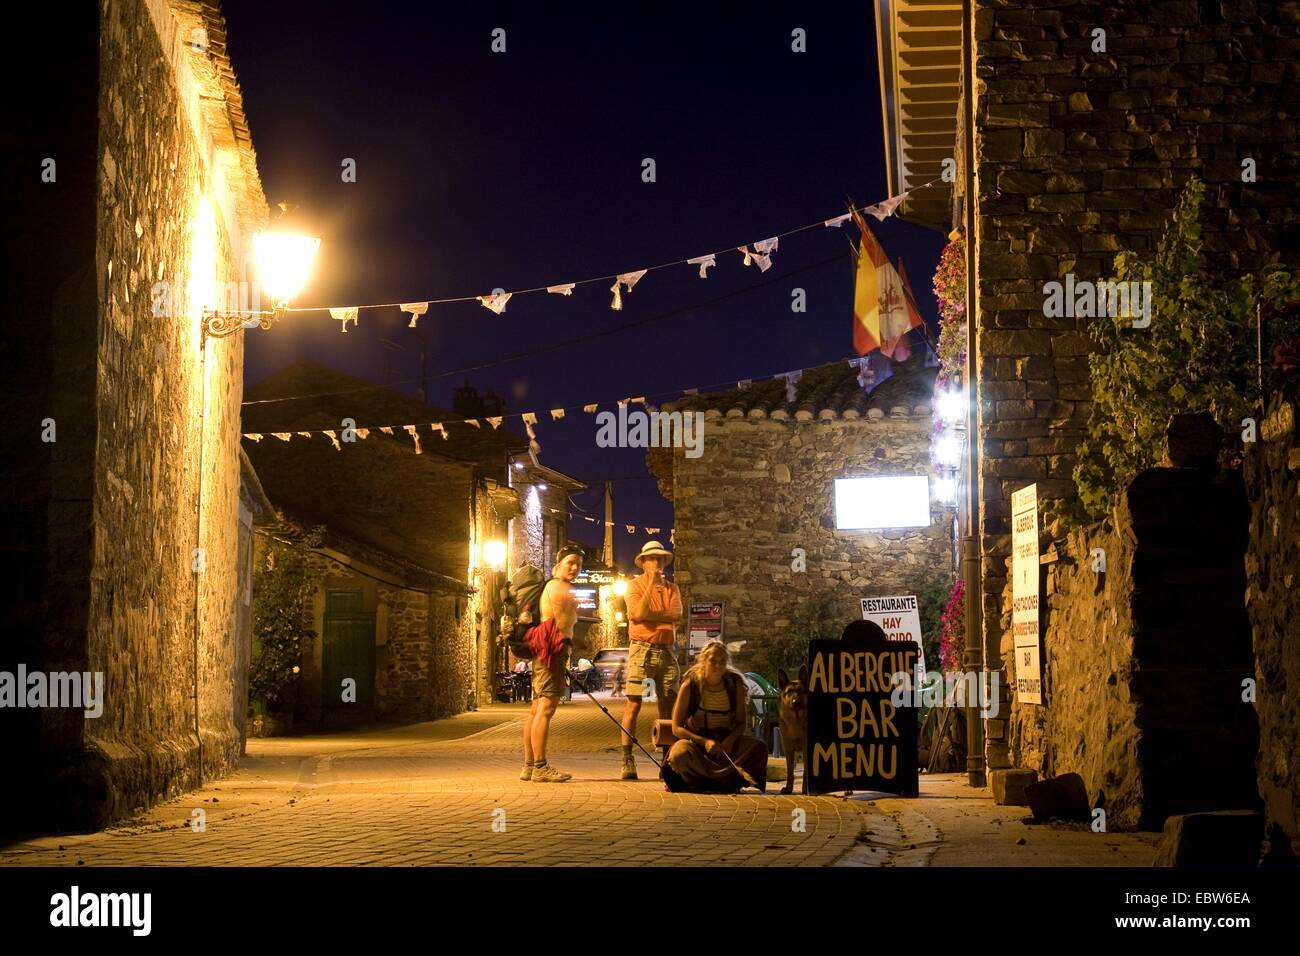 group of young pilgrims on Way of St. James arriving at the pilgrim's hostel at night, Spain, Kastilien und - Stock Image